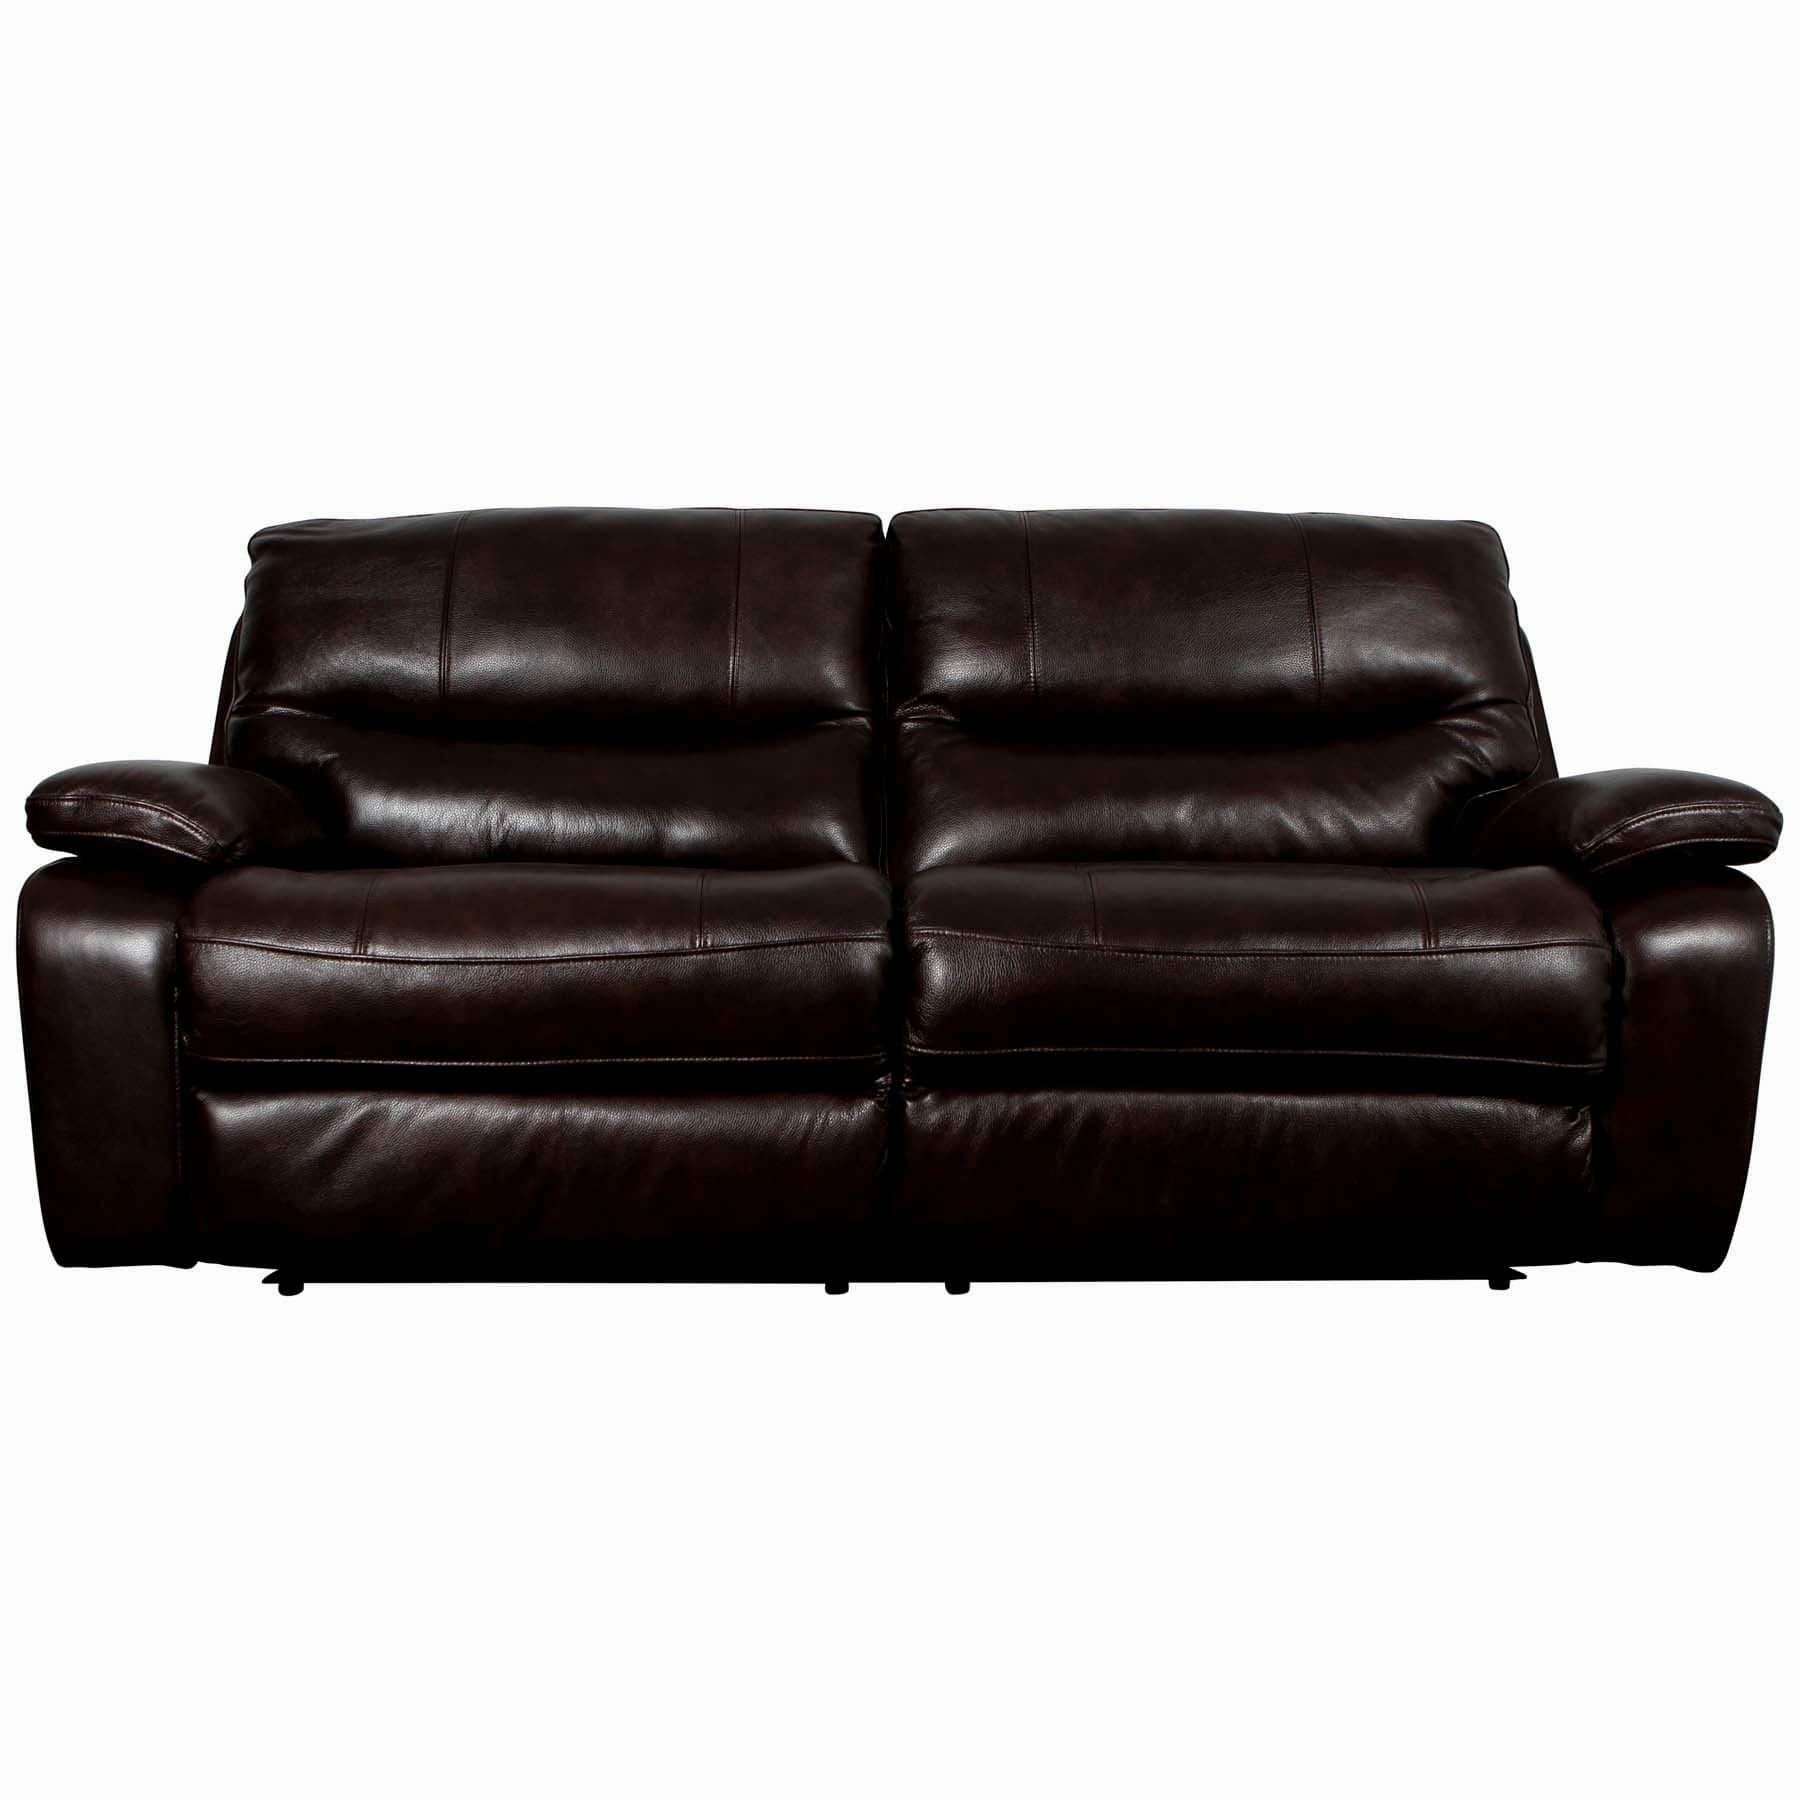 Leather Sectionals For Sale Leather Sofas For Sale Loccie Better Homes Gardens Ideas